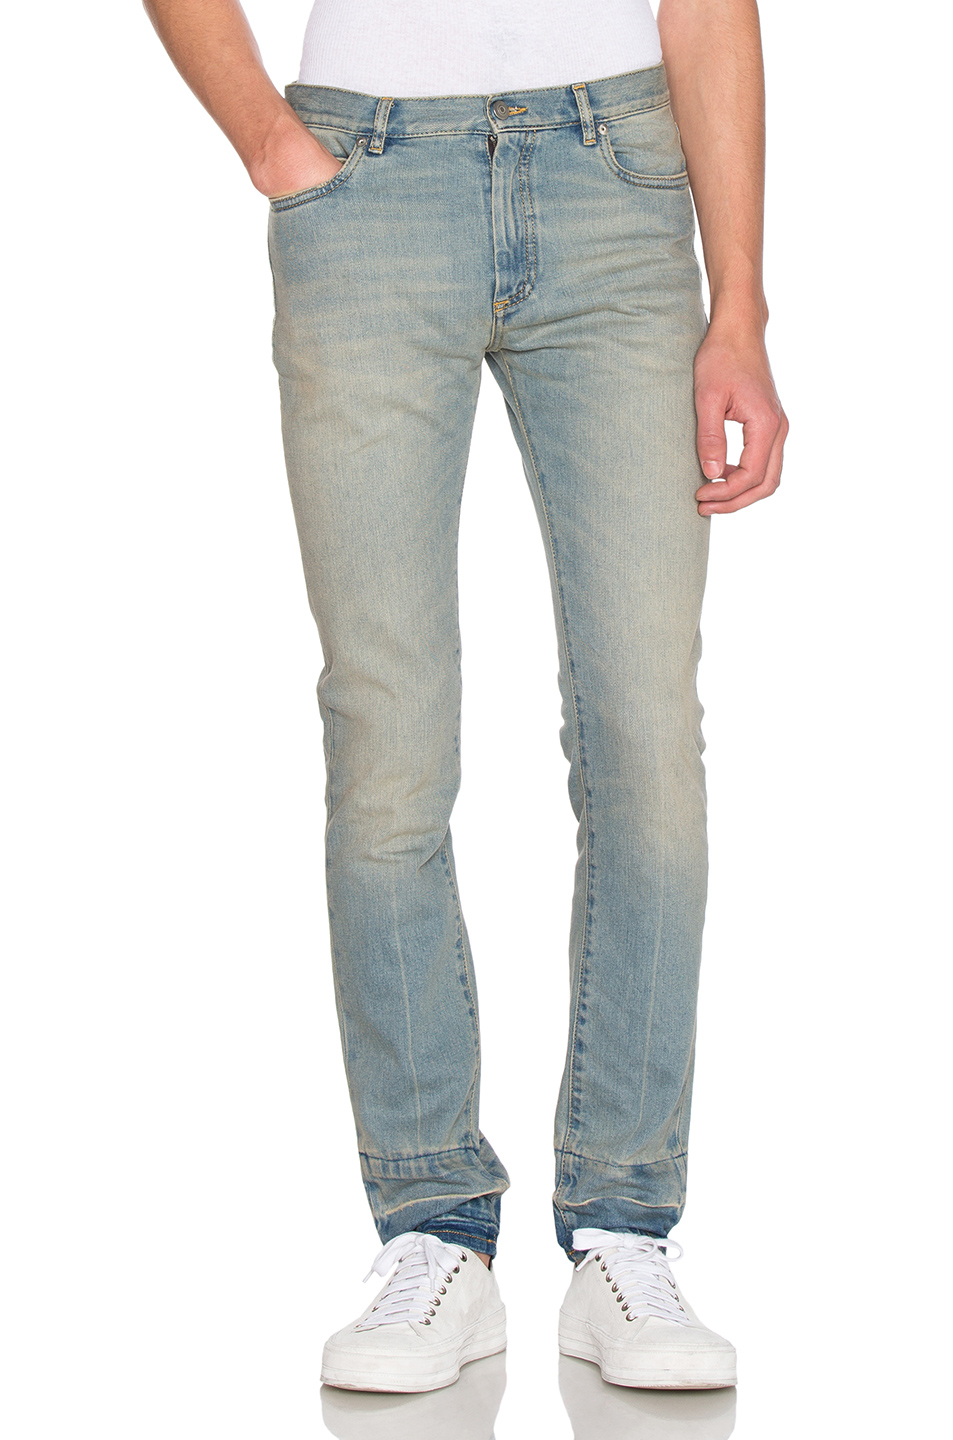 Maison Margiela Stonewashed Skinny Fit Jeans in Blue